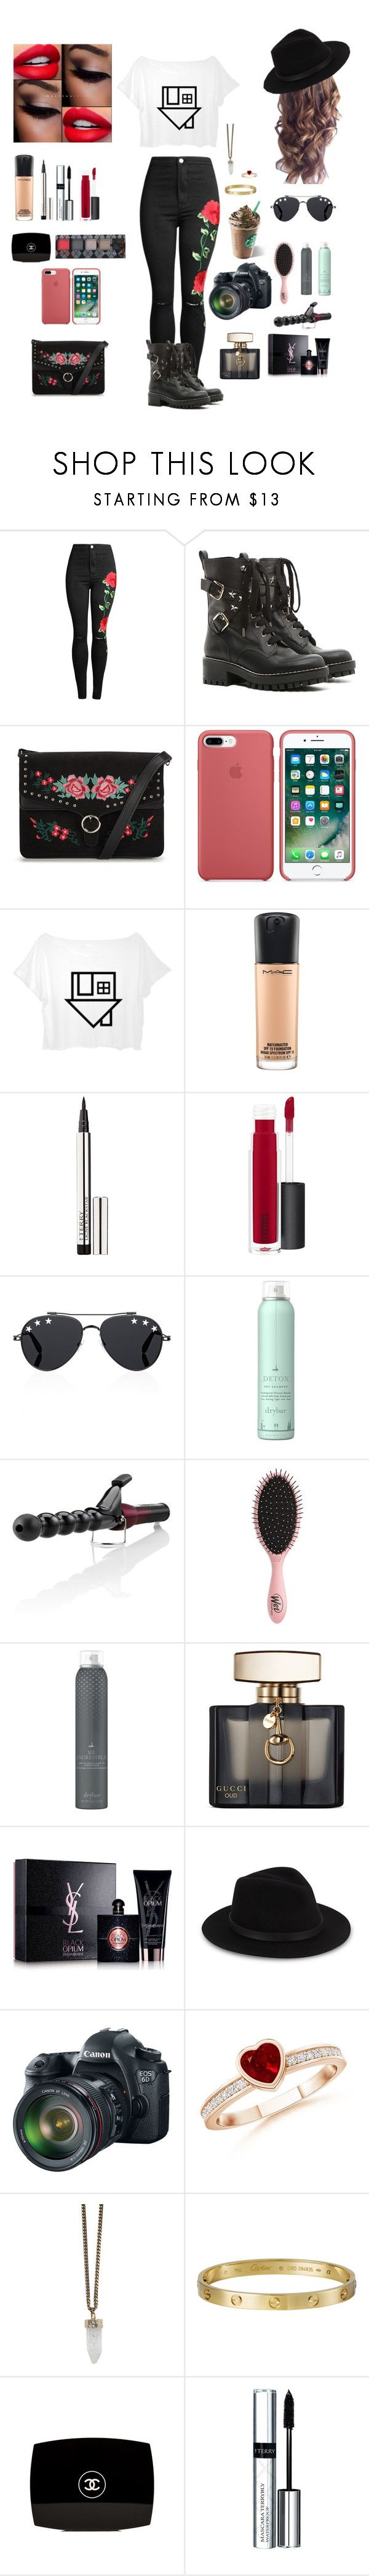 """The Neighbourhood"" by livstephanovichi ❤ liked on Polyvore featuring RED Valentino, MAC Cosmetics, By Terry, Givenchy, Drybar, ego Professional, Topshop, Gucci, Yves Saint Laurent and Saks Fifth Avenue"